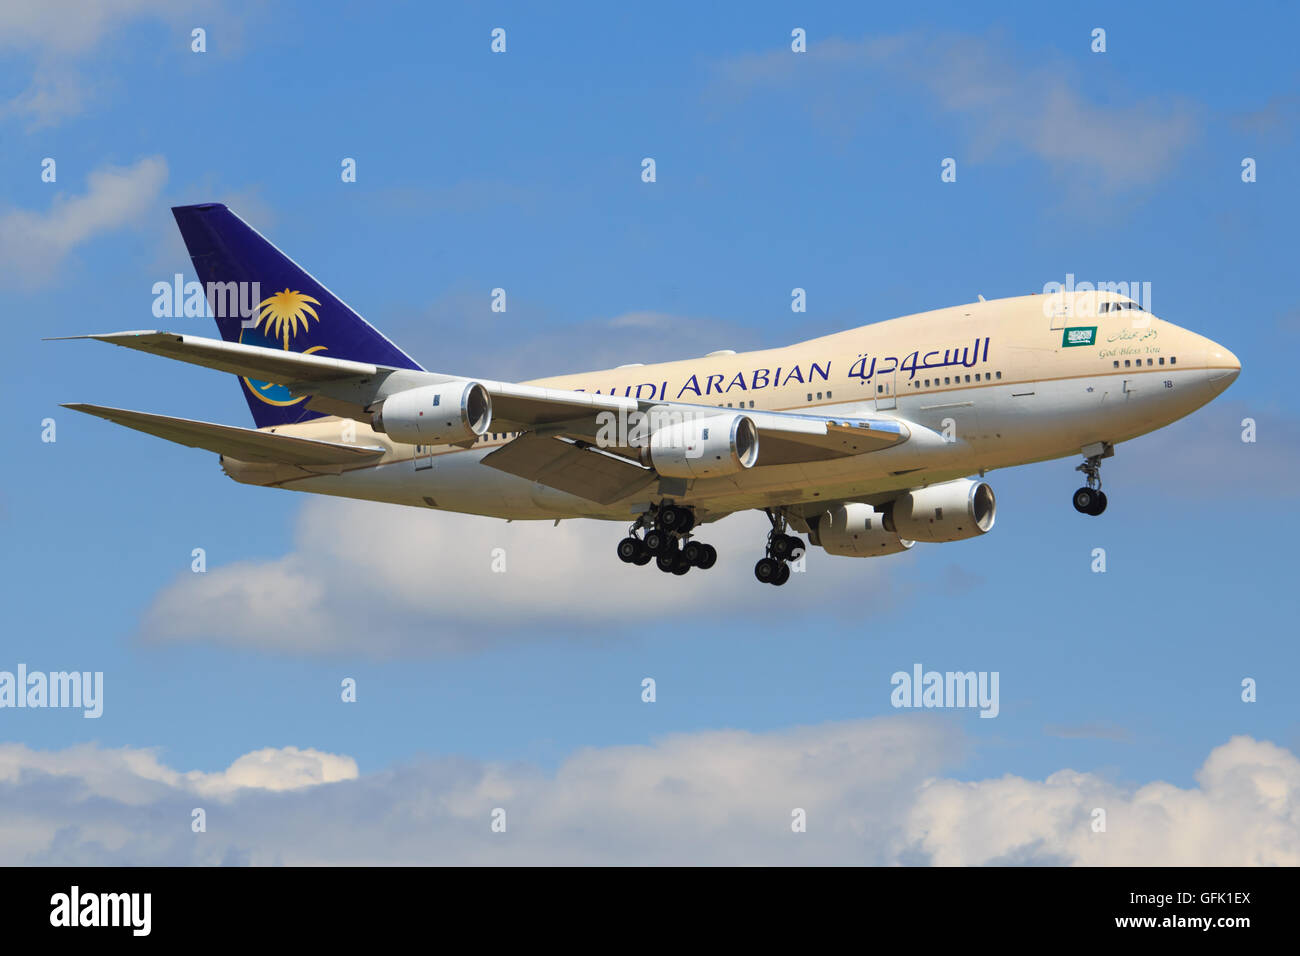 Zurich/Switzerland July10, 2016: Saudi Airliners Boeing 747SP landing at Zurich Airport. - Stock Image